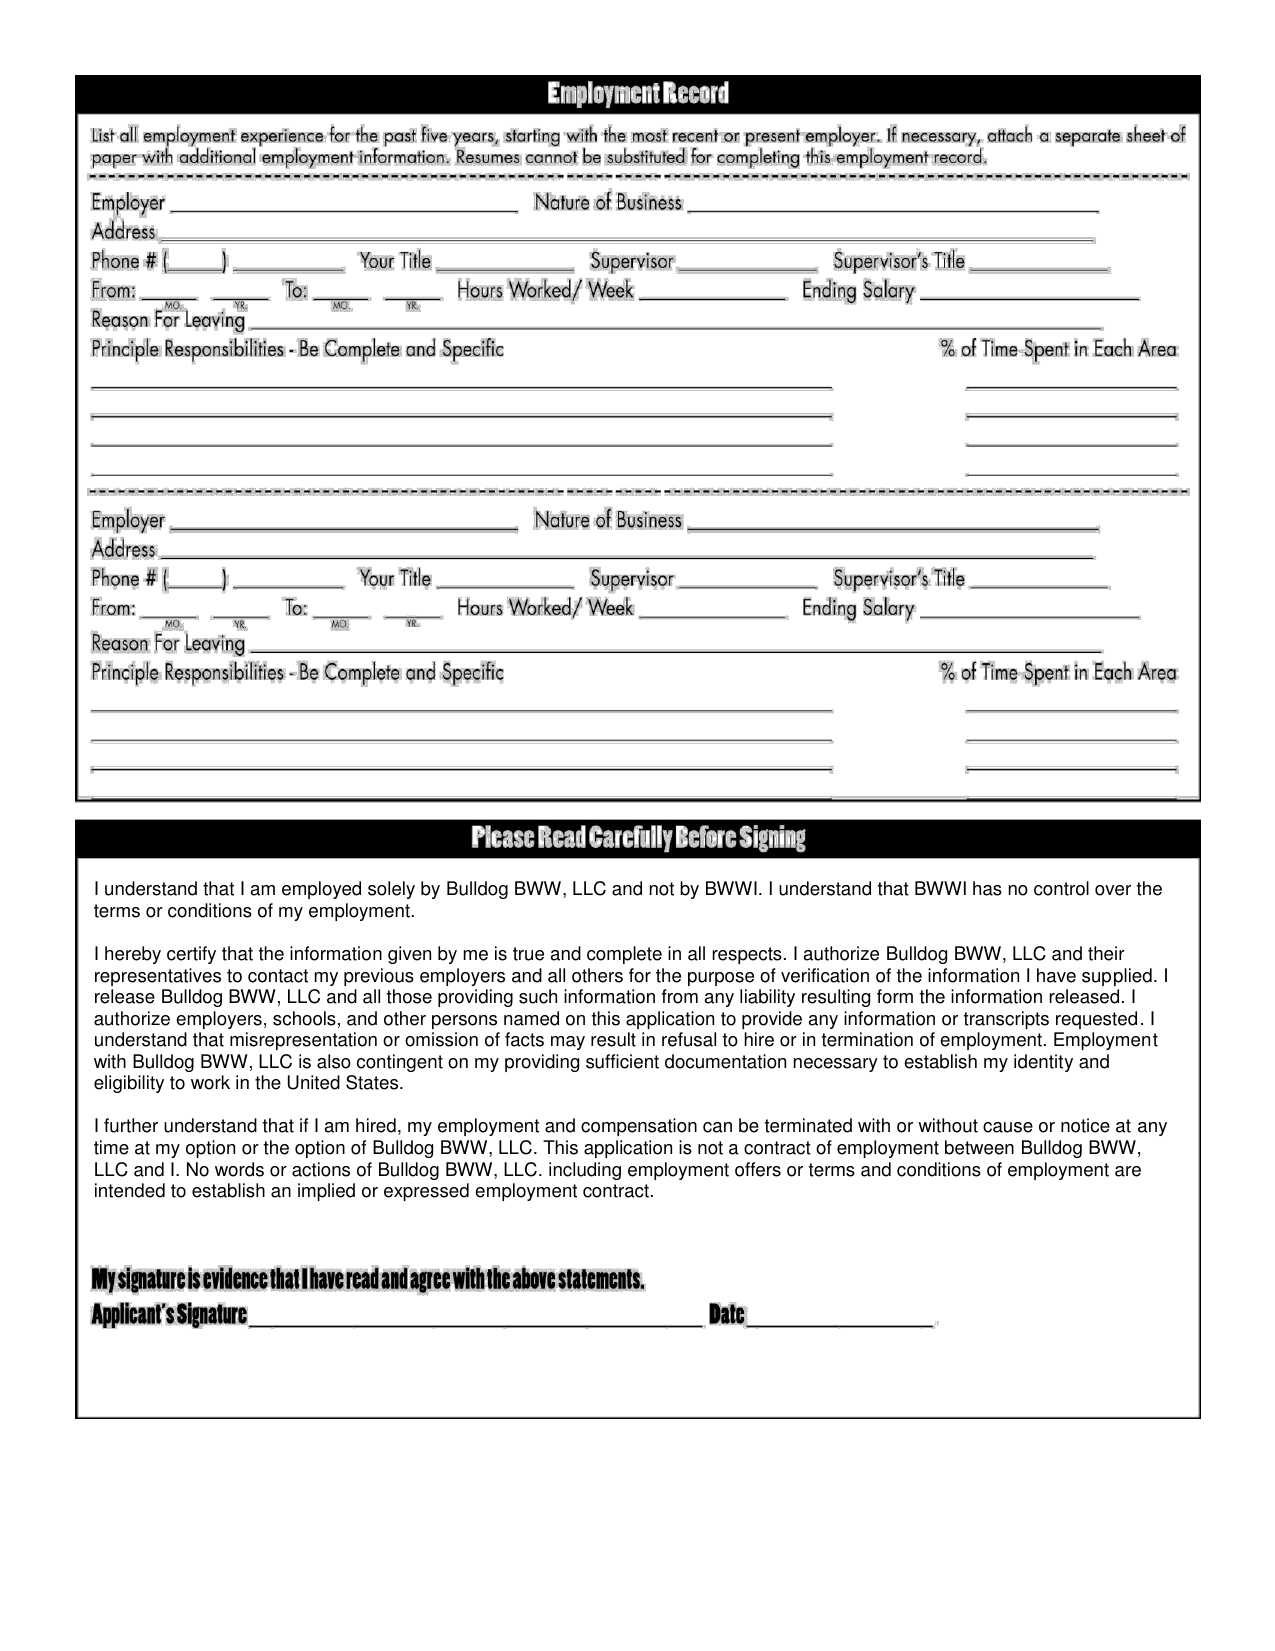 Tractor Supply Job Application Form